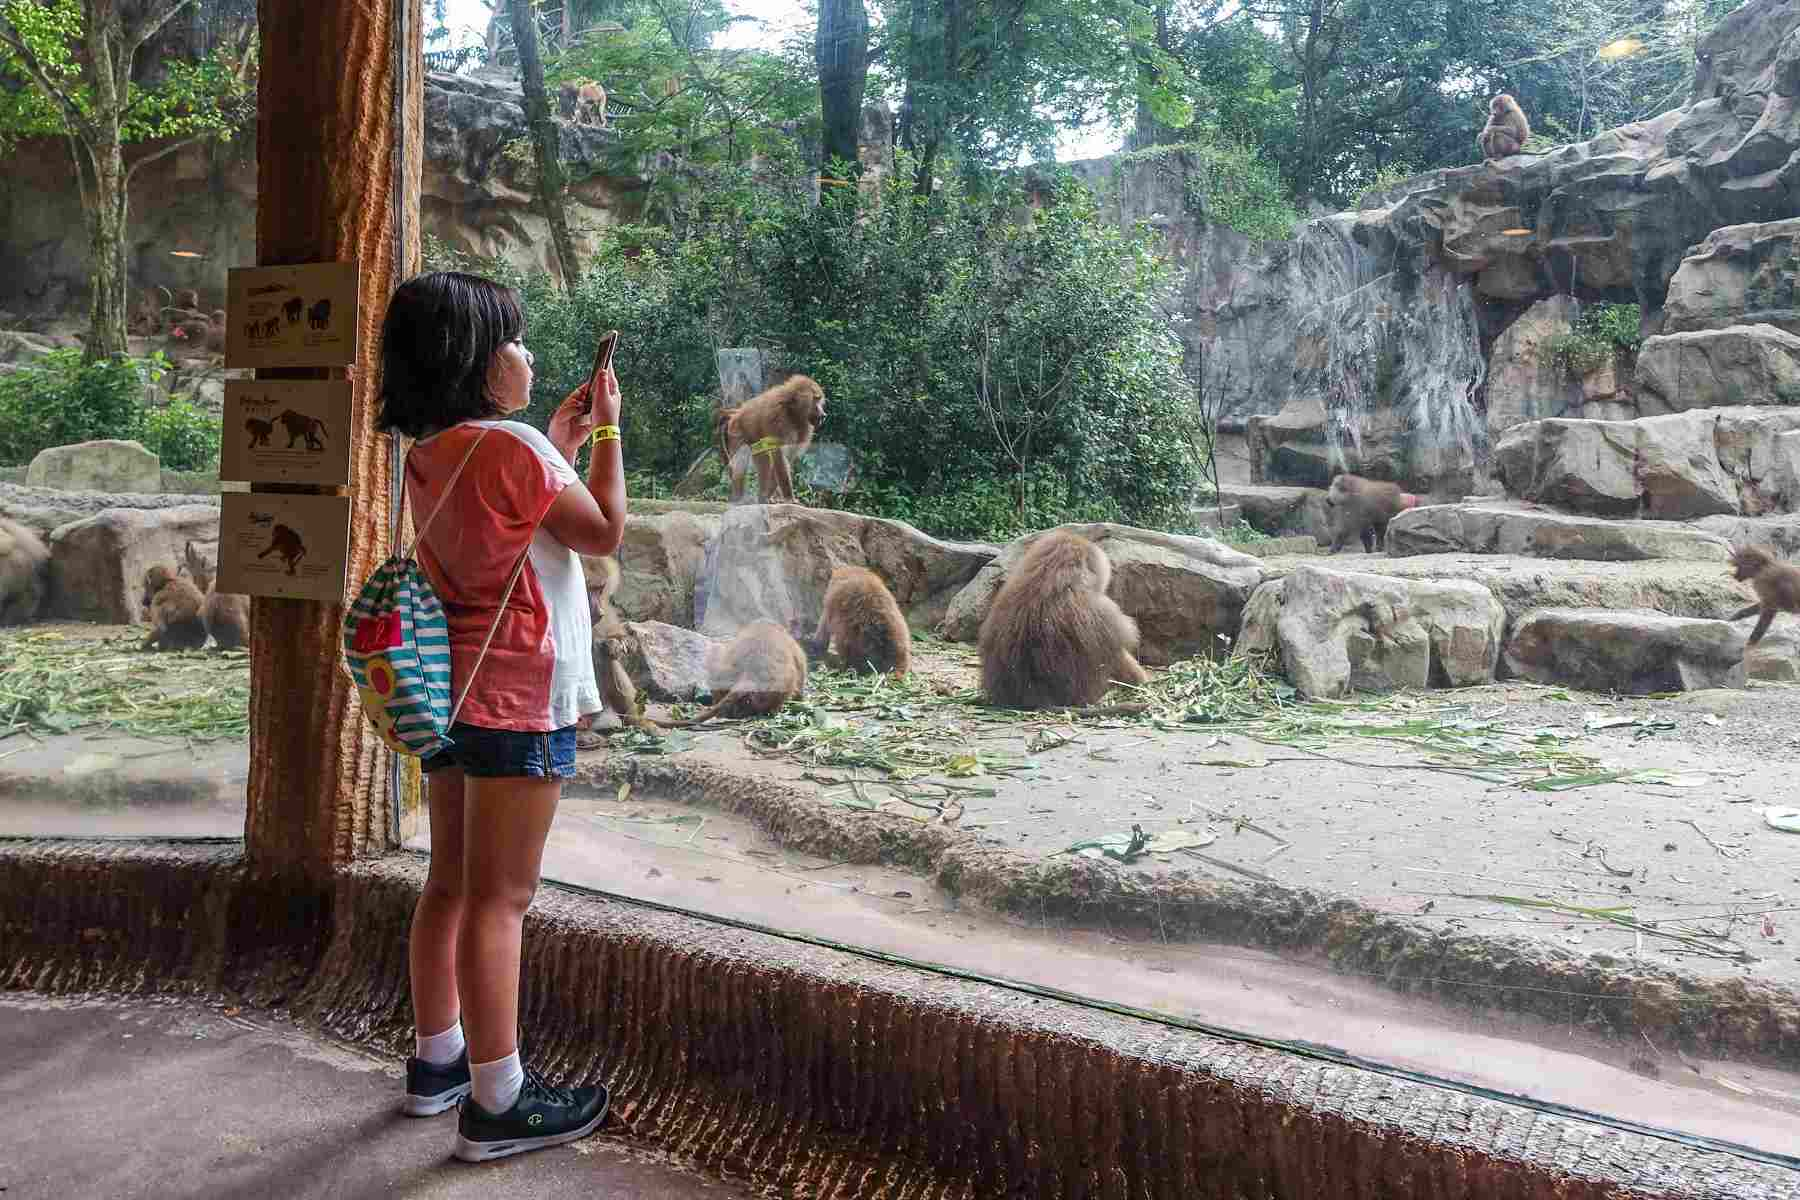 Kid photographing baboons at Singapore Zoo